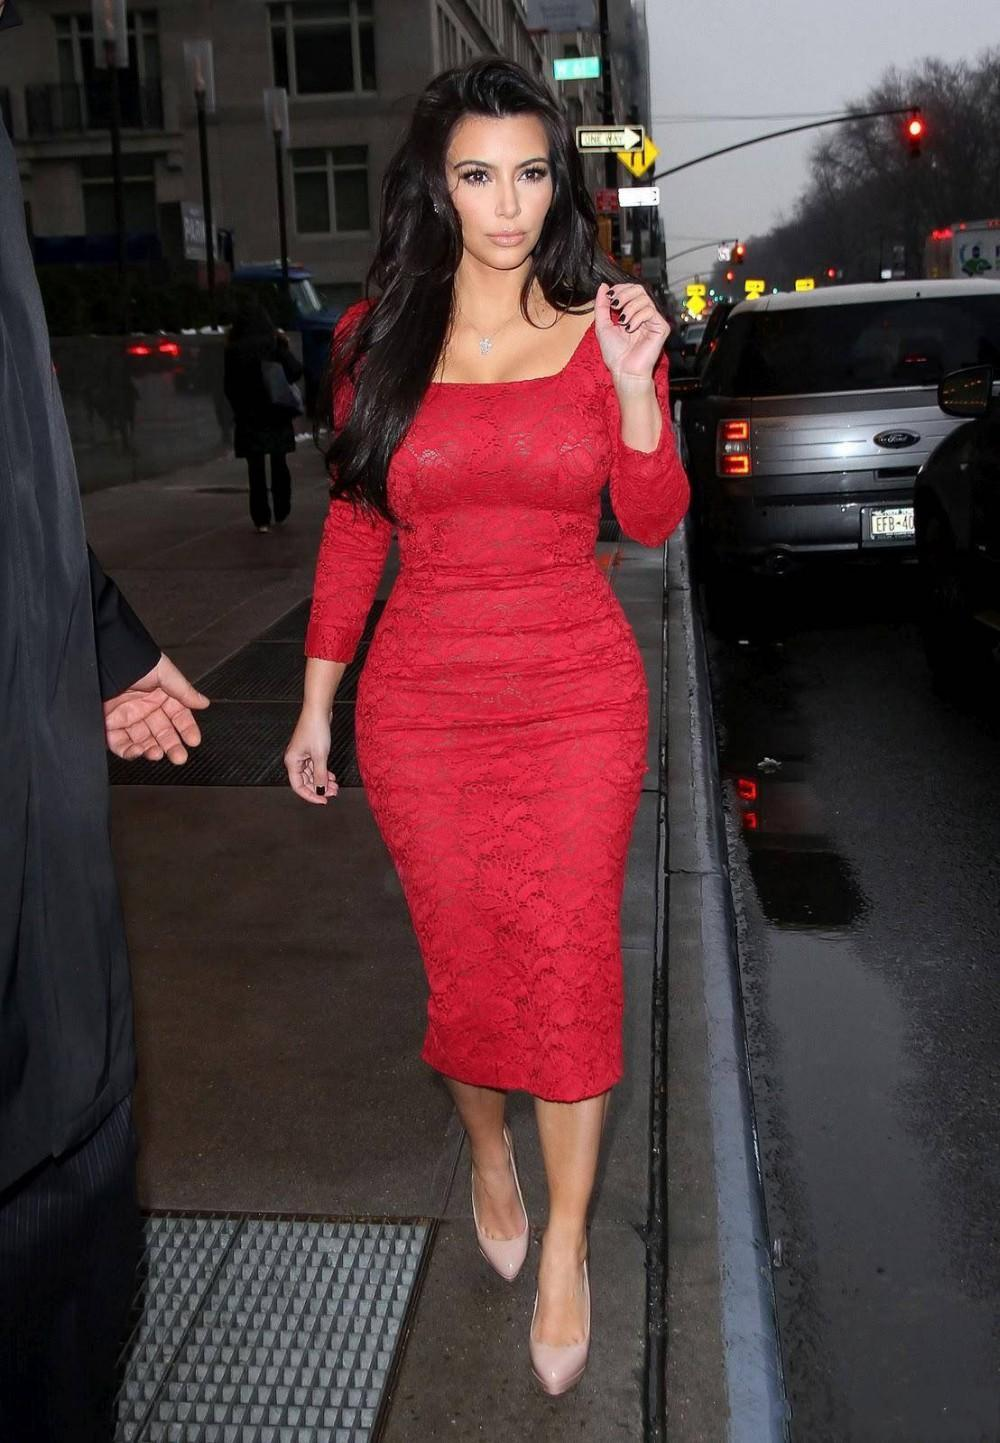 2019 New Sexy Formal Dress Vestidos Knee-Length Kim Kardashian Red Carpet Dresses Long Sleeves Red Lace Celebrity Dresses Evening Dress 2018